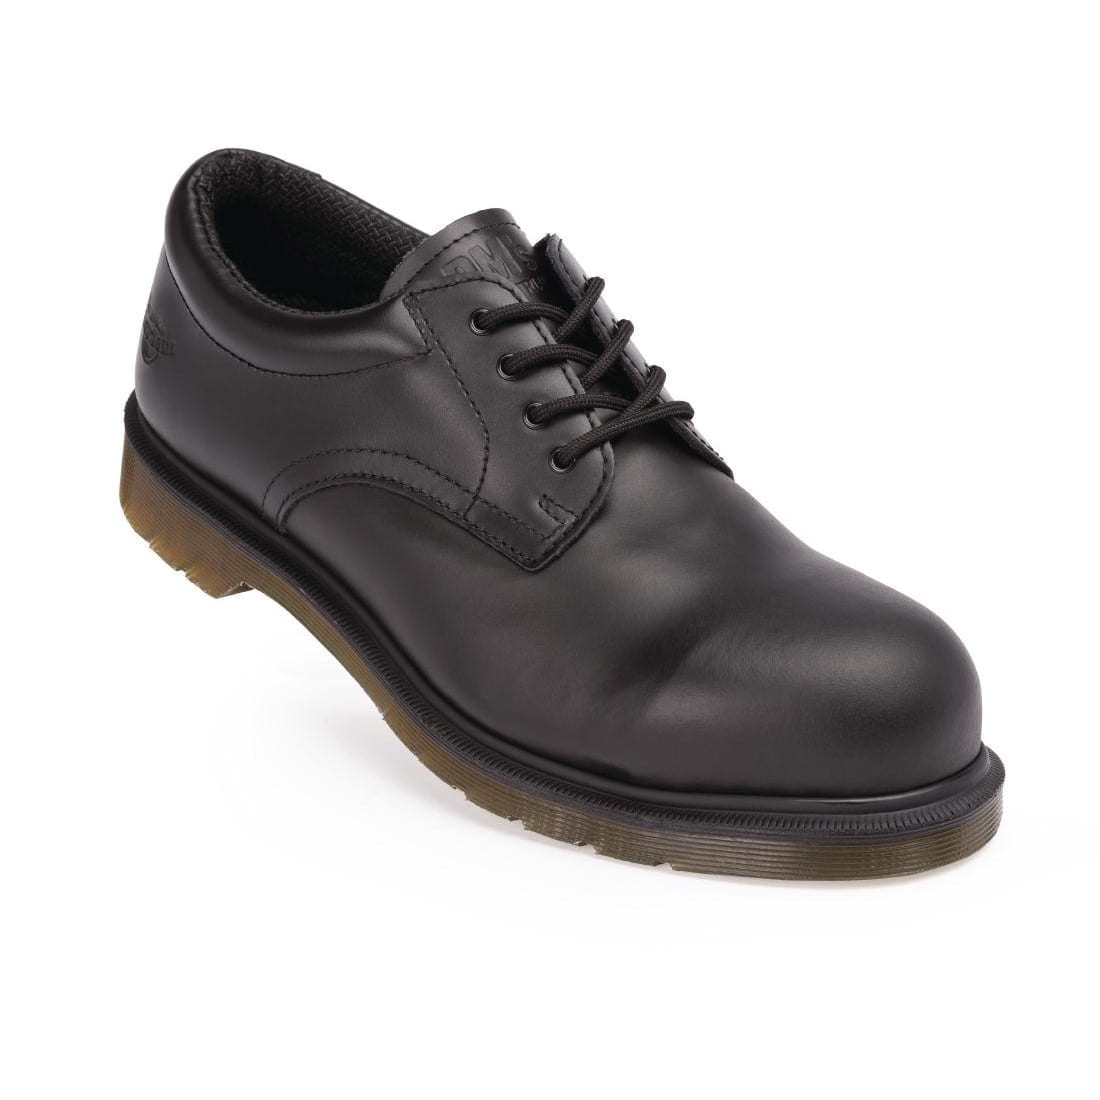 Dr Martens Classic Black Icon Safety Shoe - Size 39-0